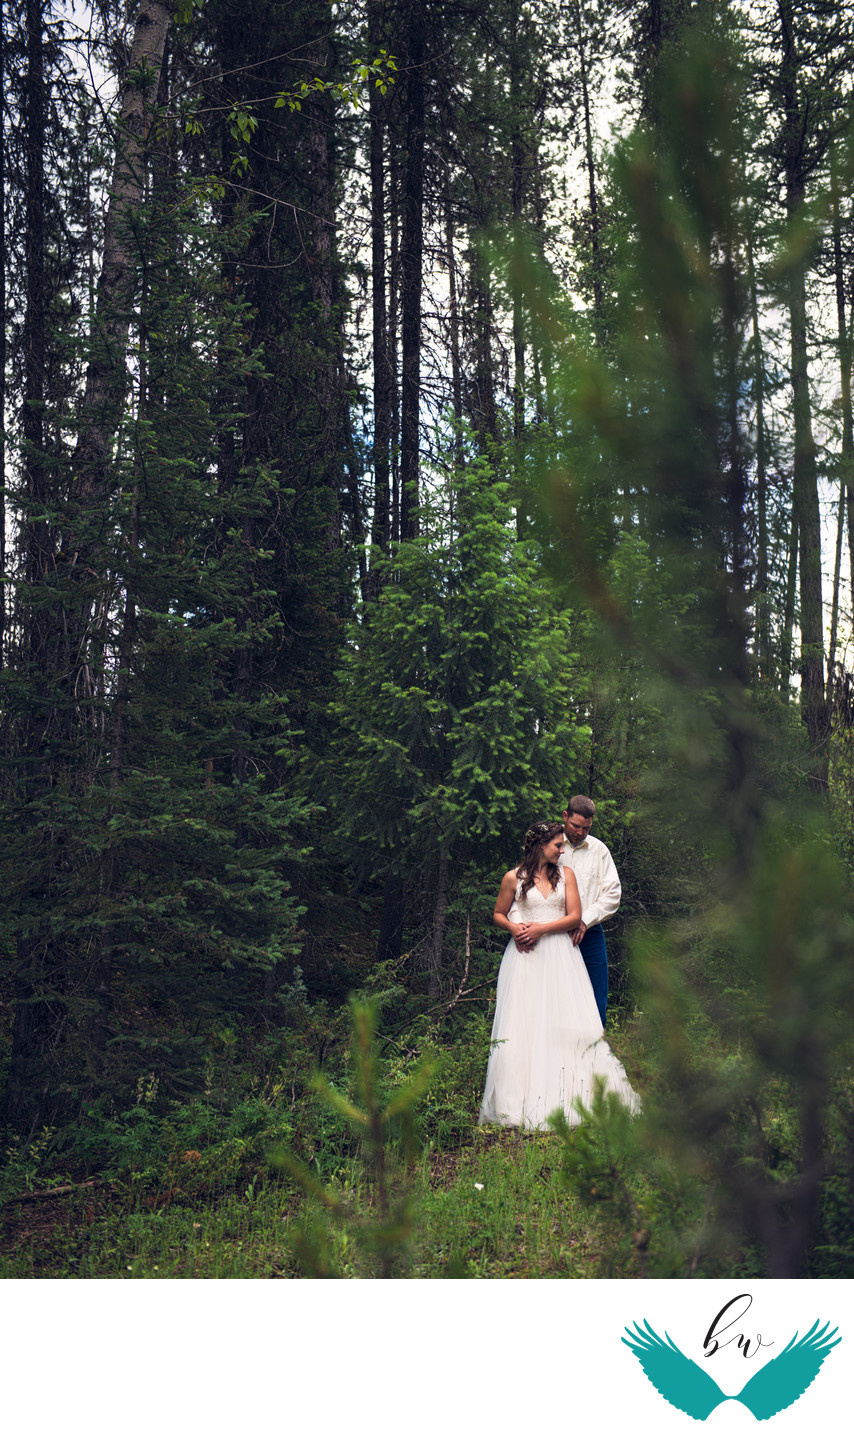 Woods bride and groom portrait nm wedding photographer